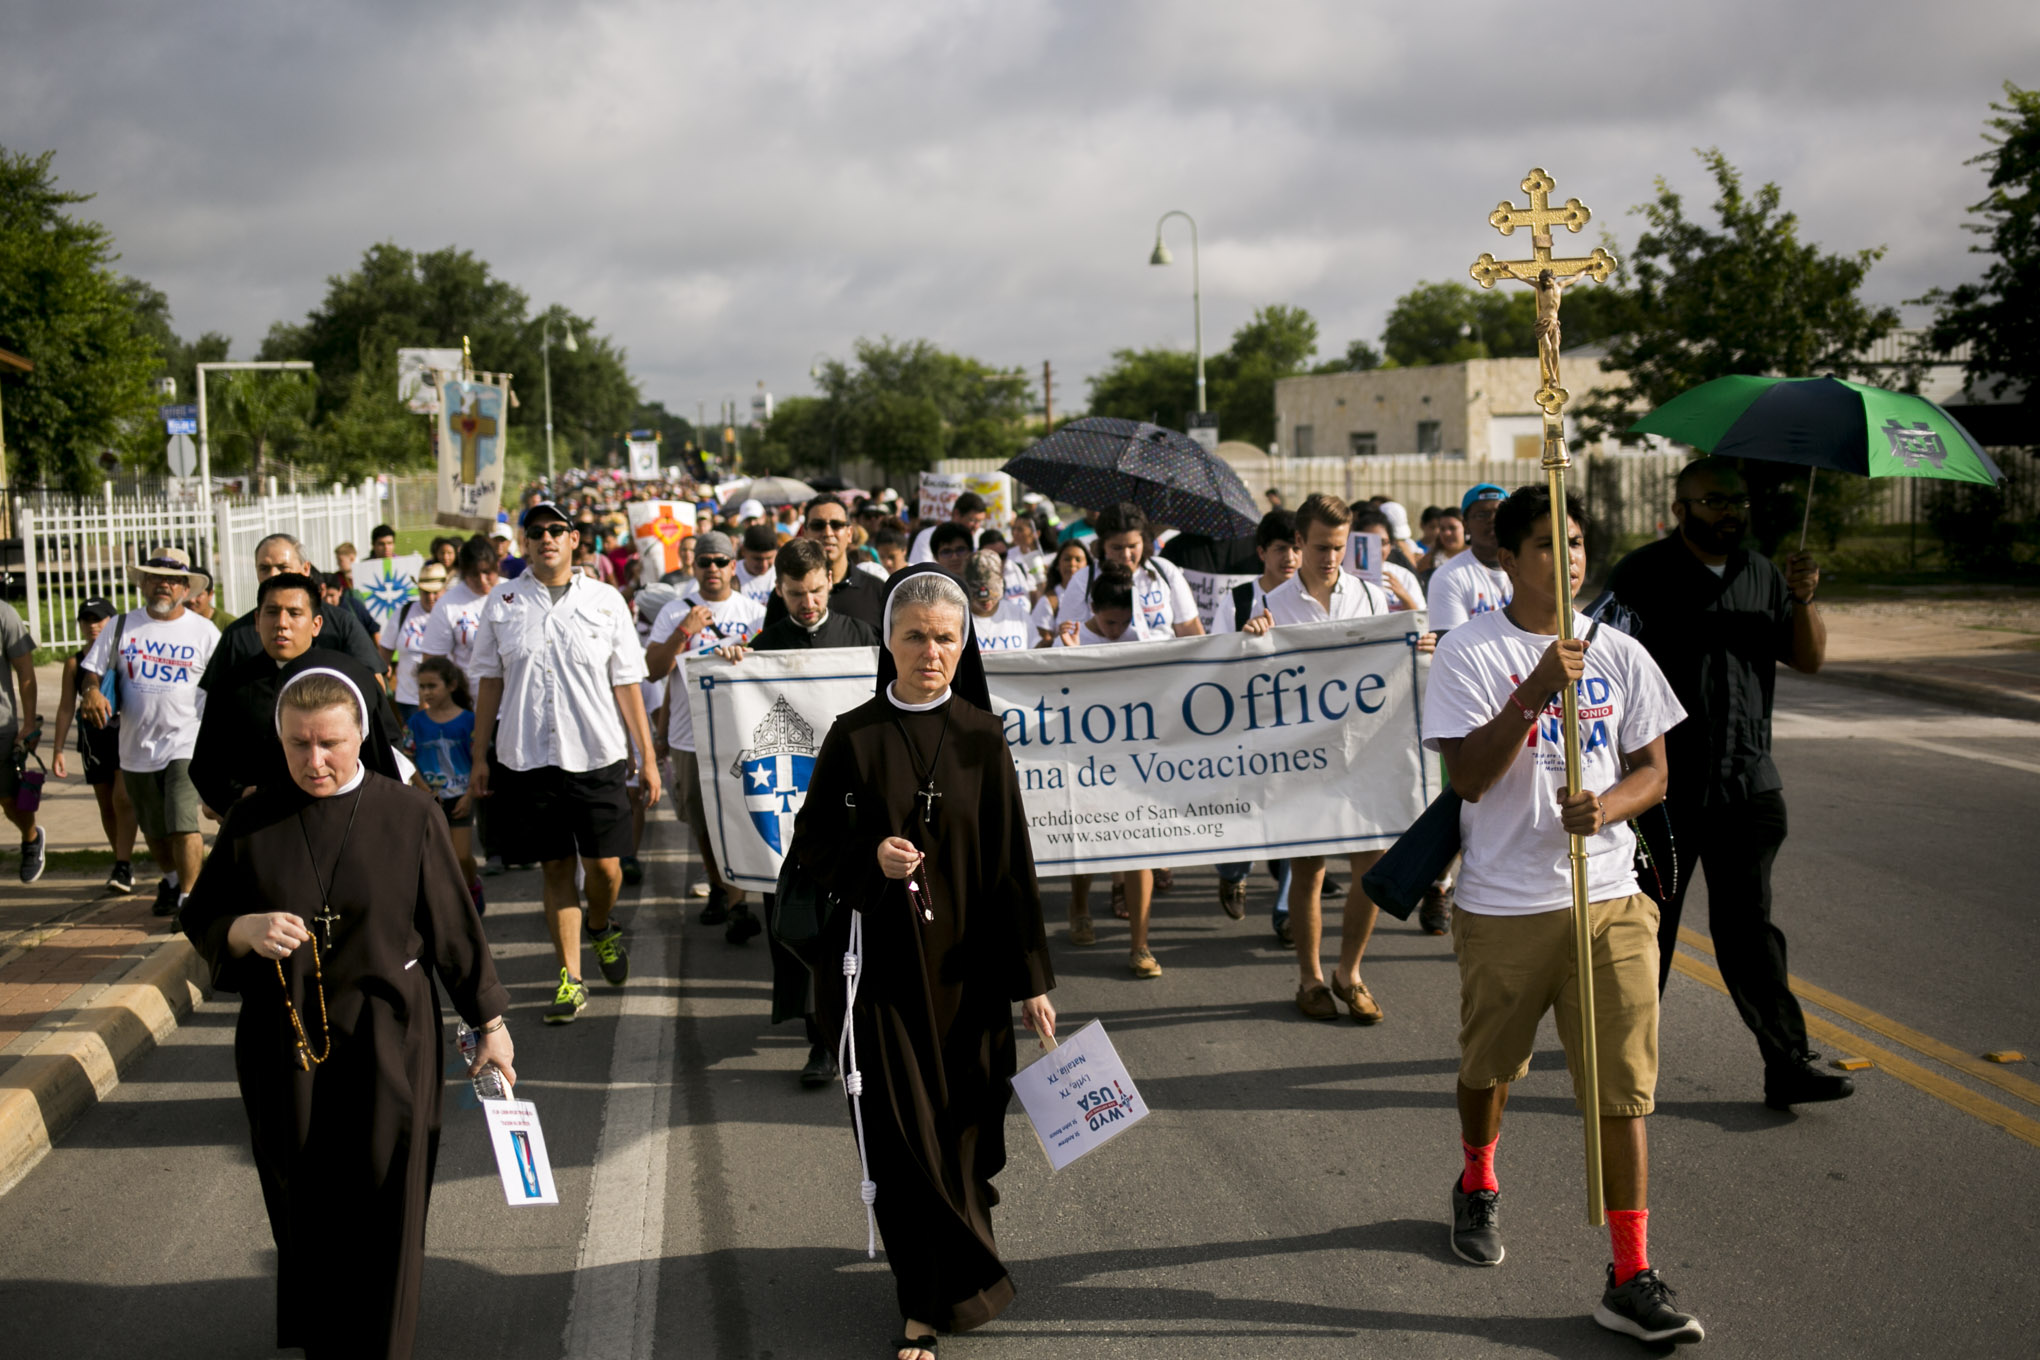 Hundreds walk in the Pilgrimage from Mission Concepción to Mission San José for World Youth Day San Antonio 2016. Photo by Kathryn Boyd-Batstone.